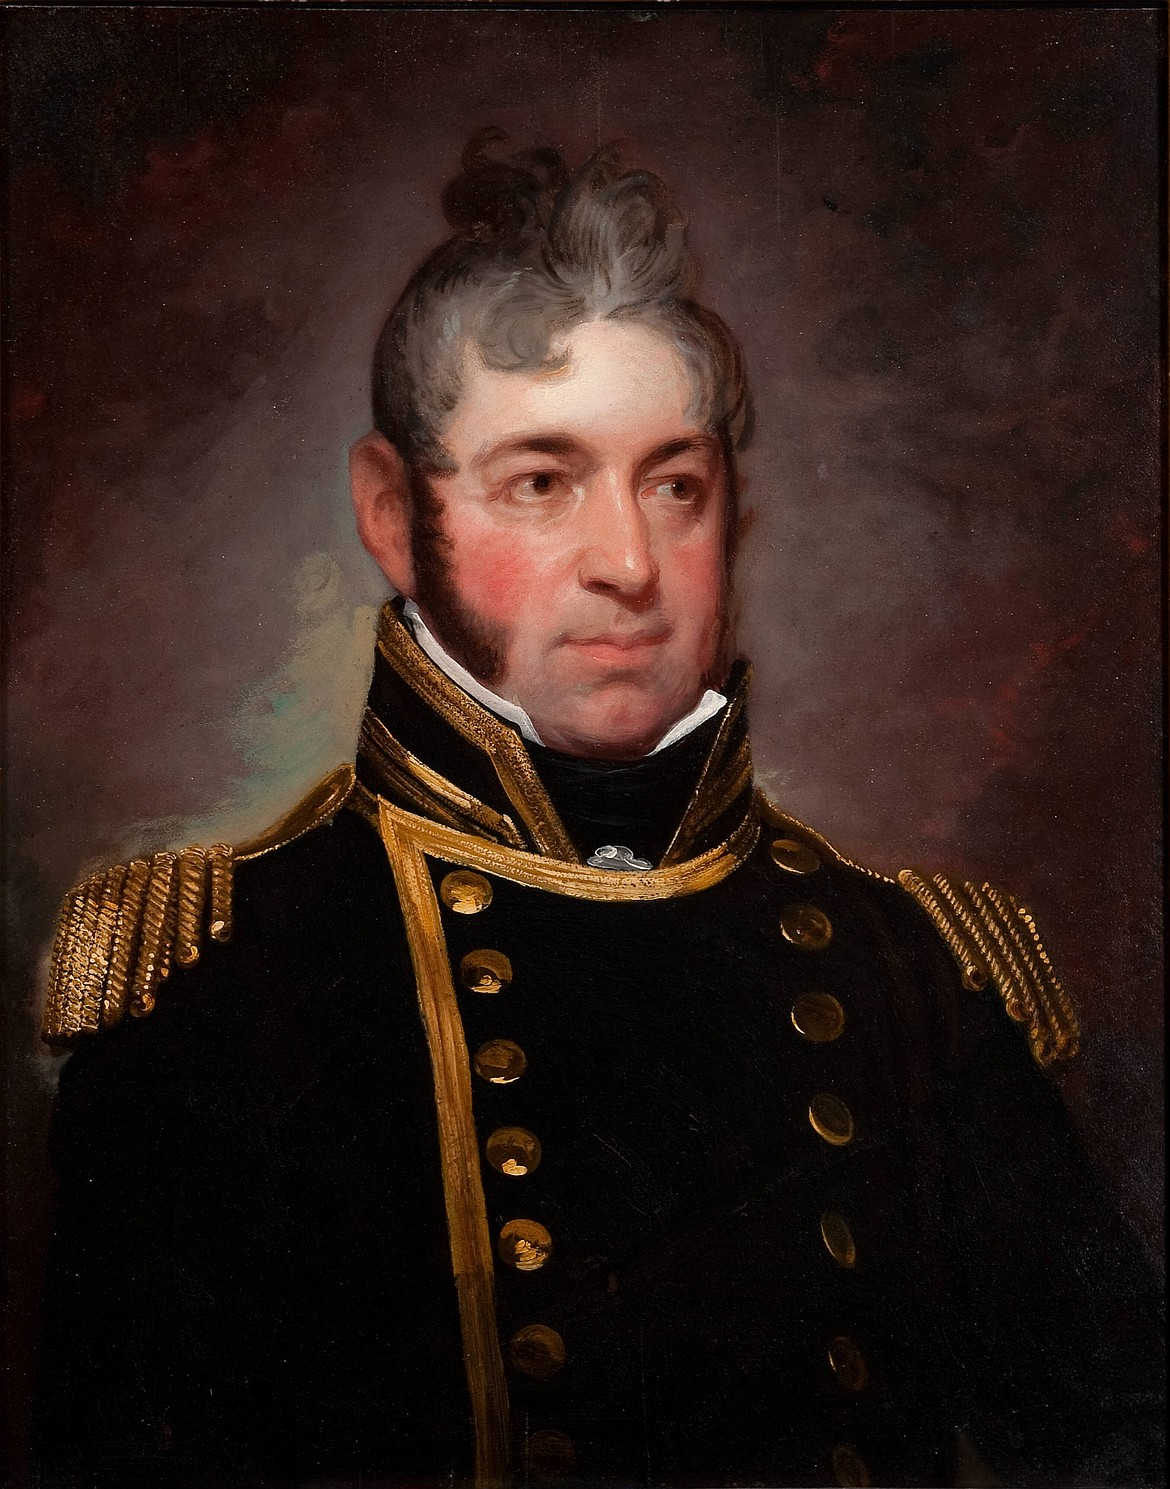 U.S. Navy Commodore Edward Preble (1761-1607), commander of first American fleet to fight back against the Barbary pirates in the First Barbary War (1801-1805).